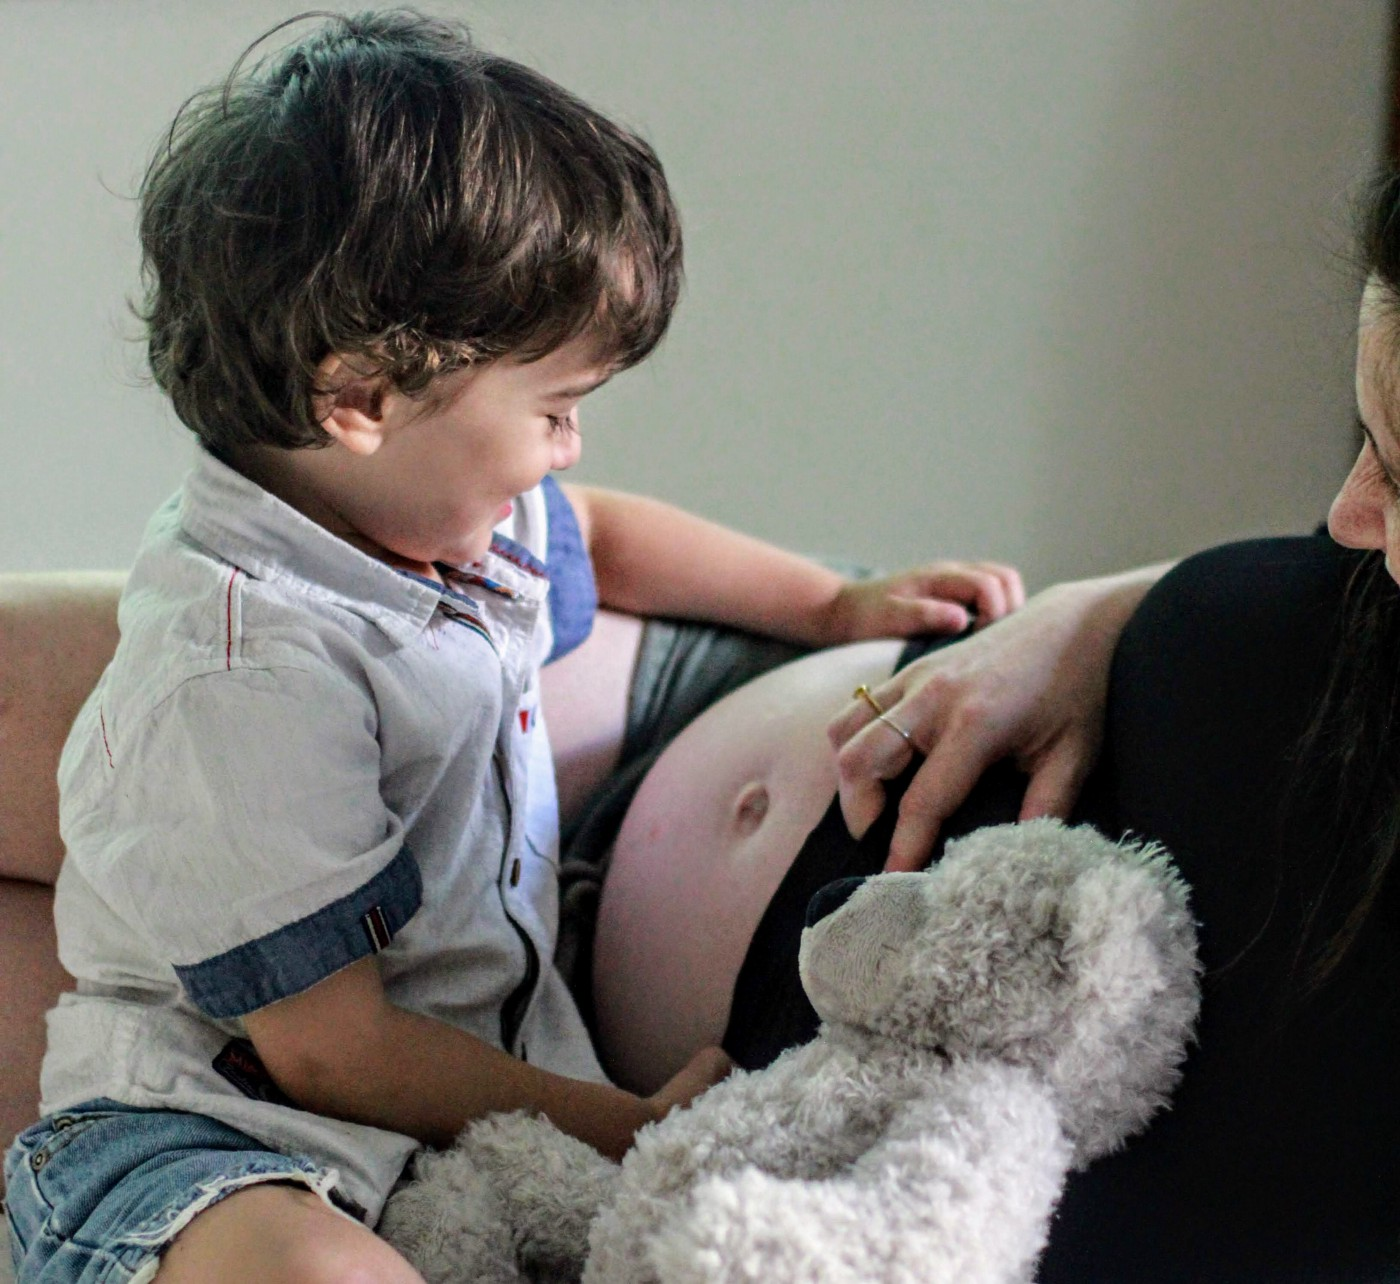 Toddler with brown hair admires the pregnant belly of his mother, who is lying reclined.